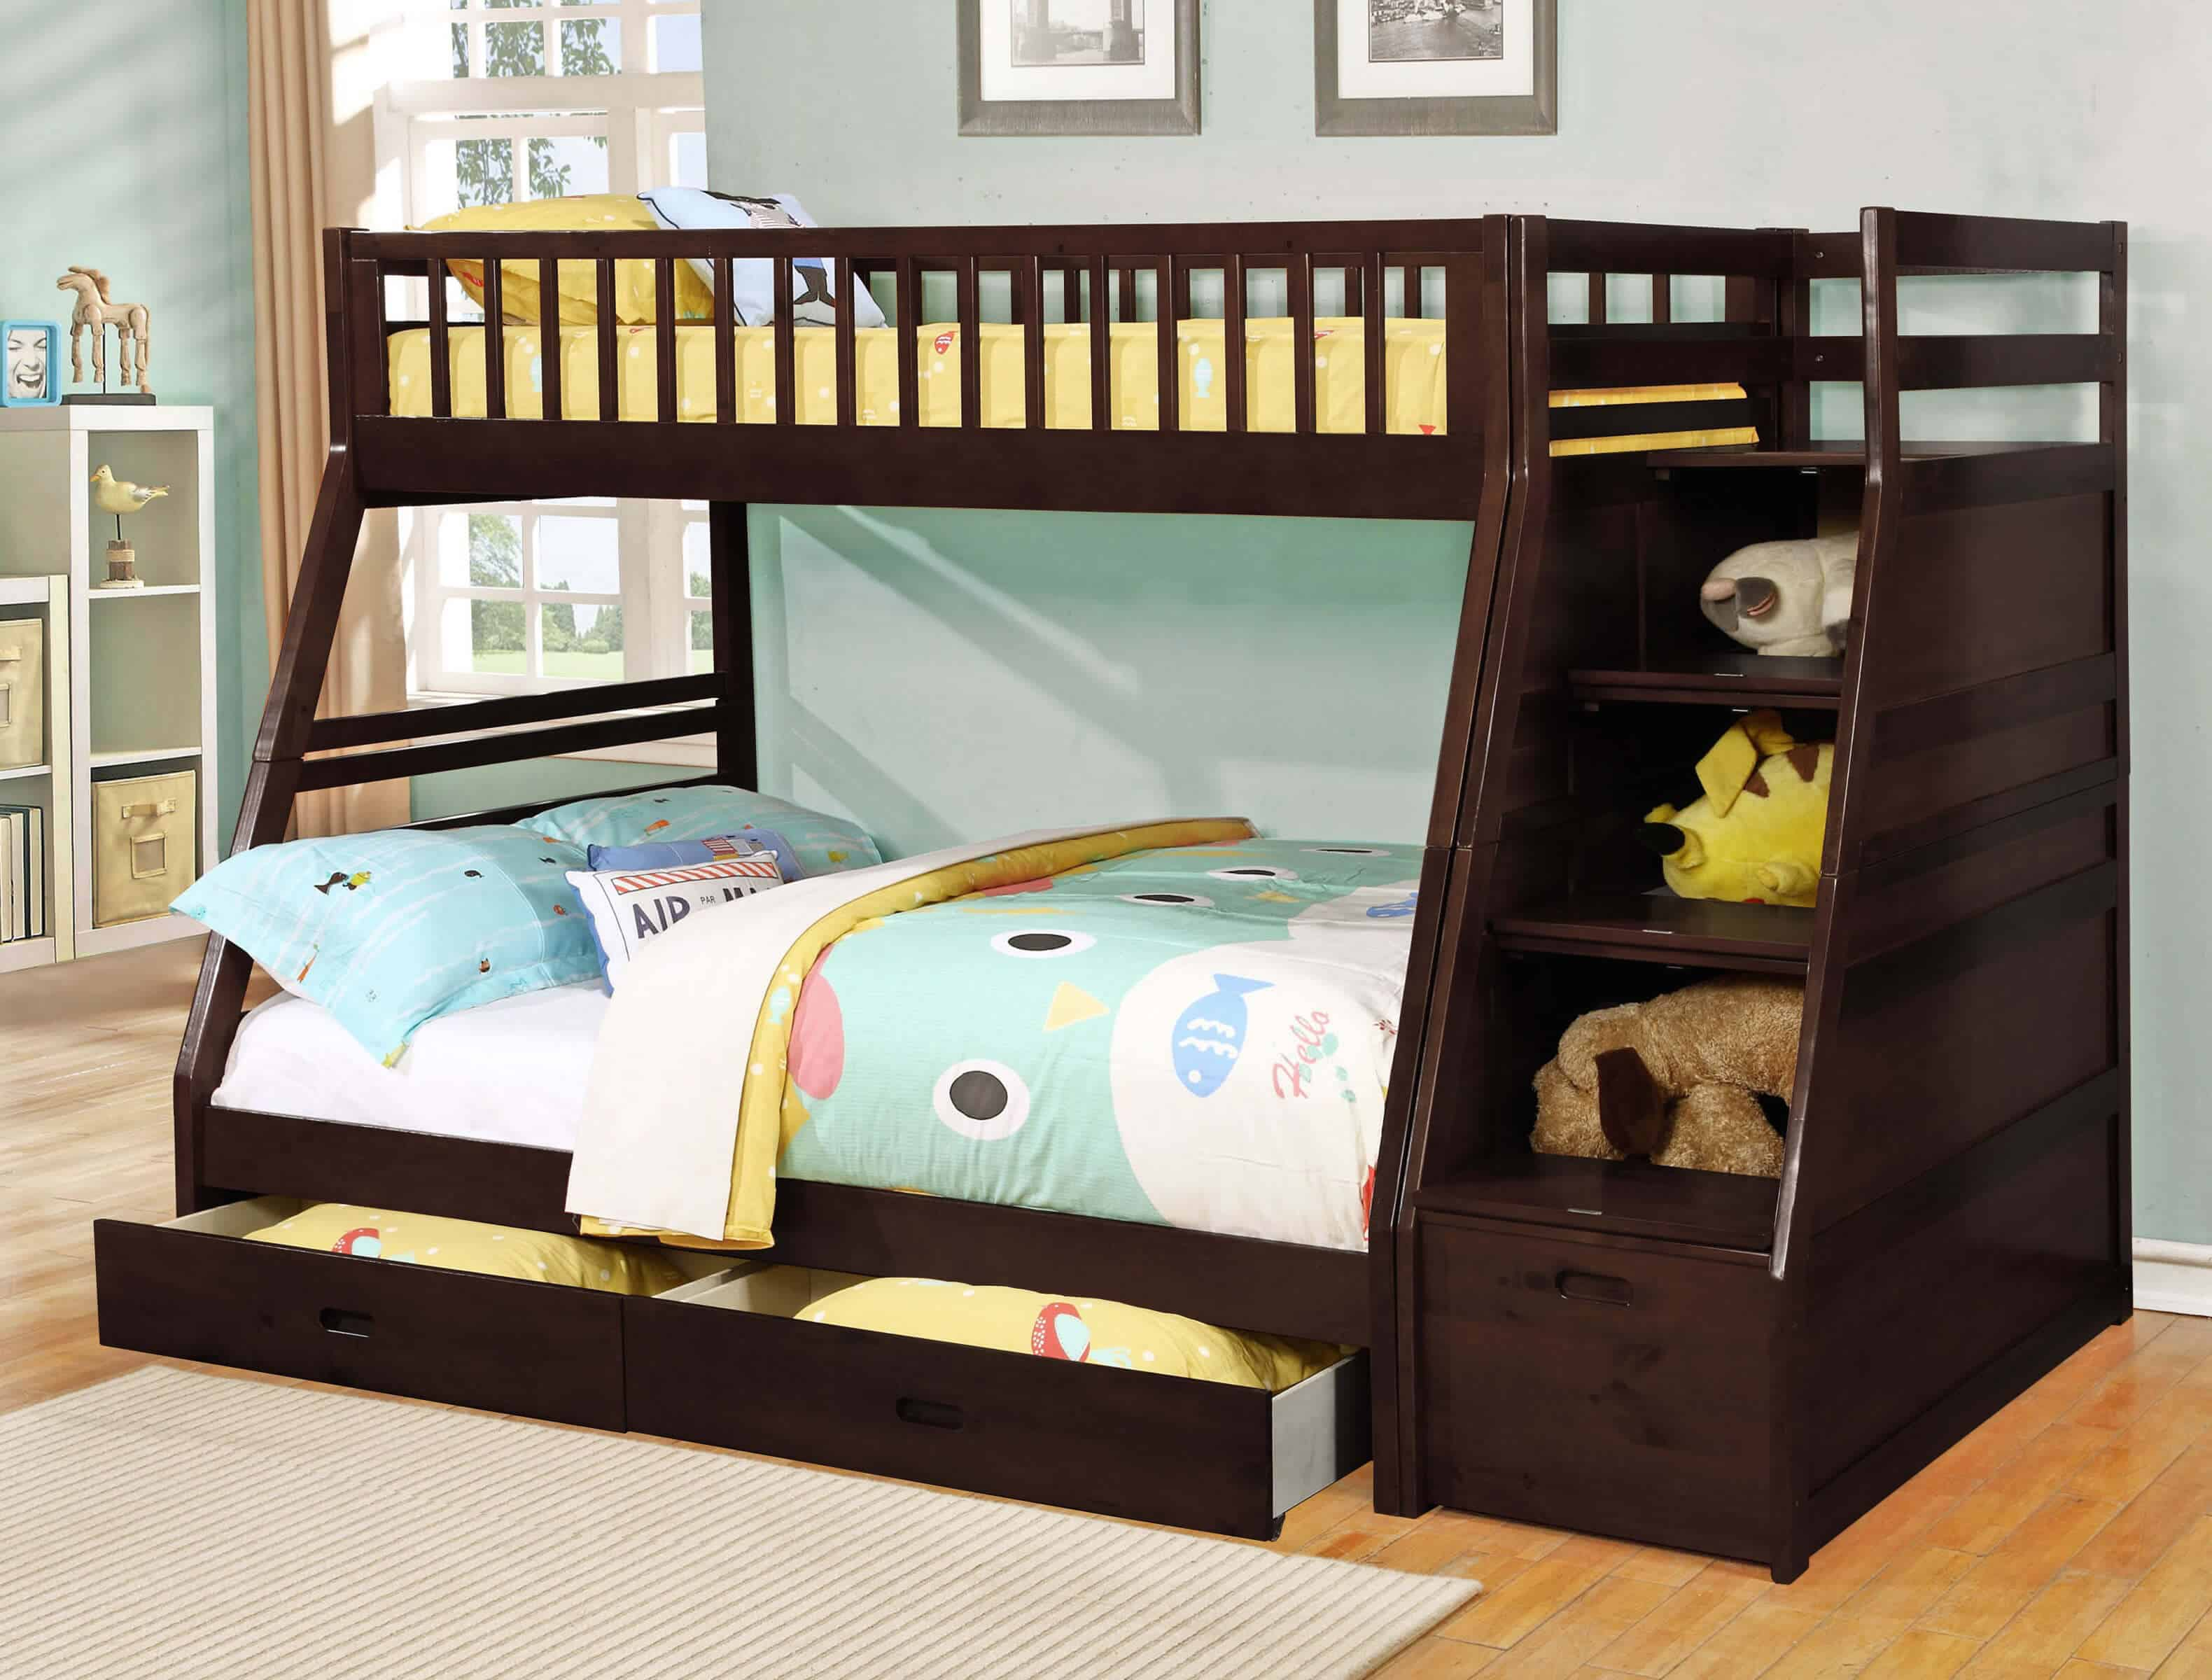 Bunk bed with owl comforter.